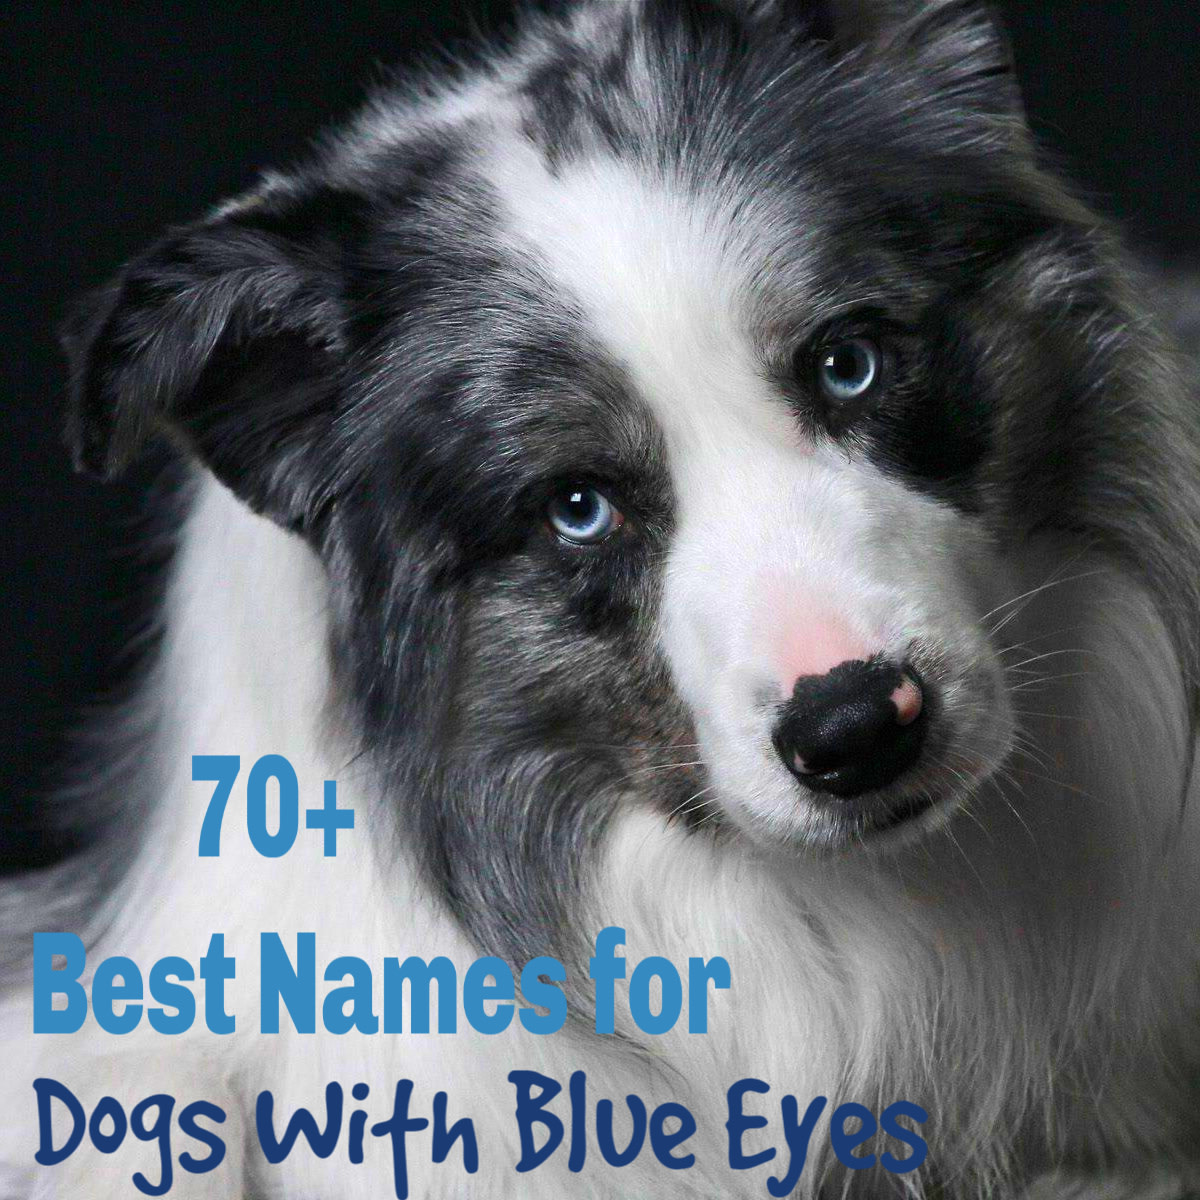 Here are 70+ great dog names for your blue-eyed pup!